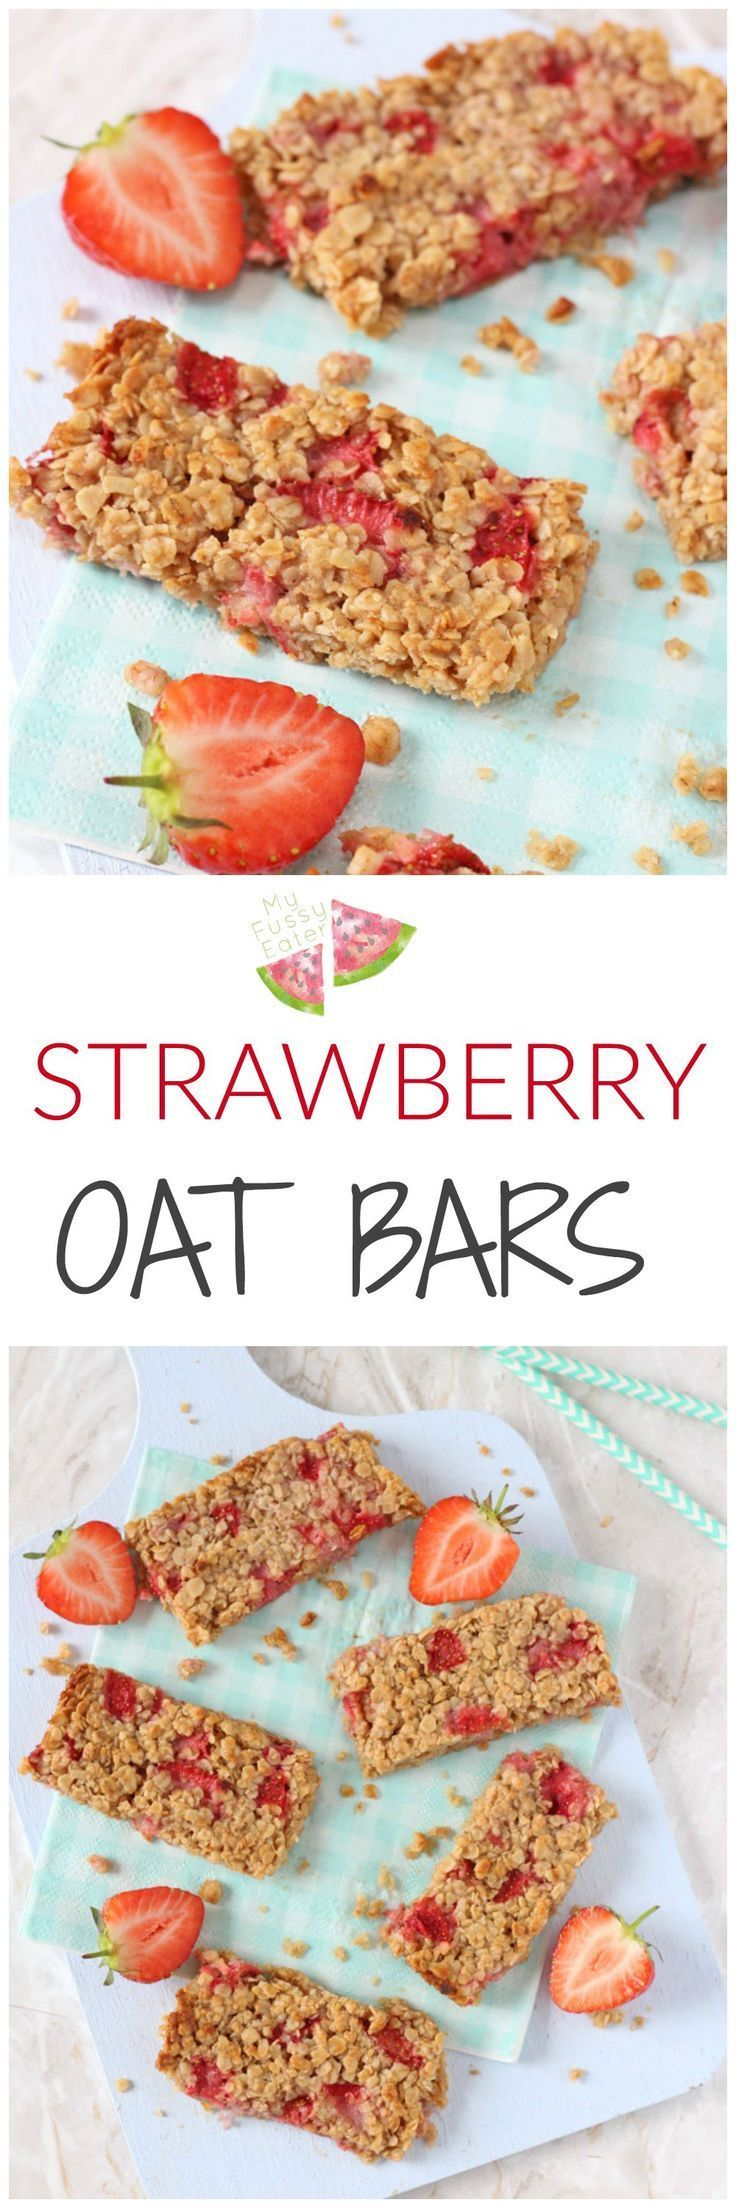 A delicious soft oat bar recipe packed full with sweet strawberries. A tasty and healthy snack for toddlers and older kids! | Posted By: http://DebbieNet.com |